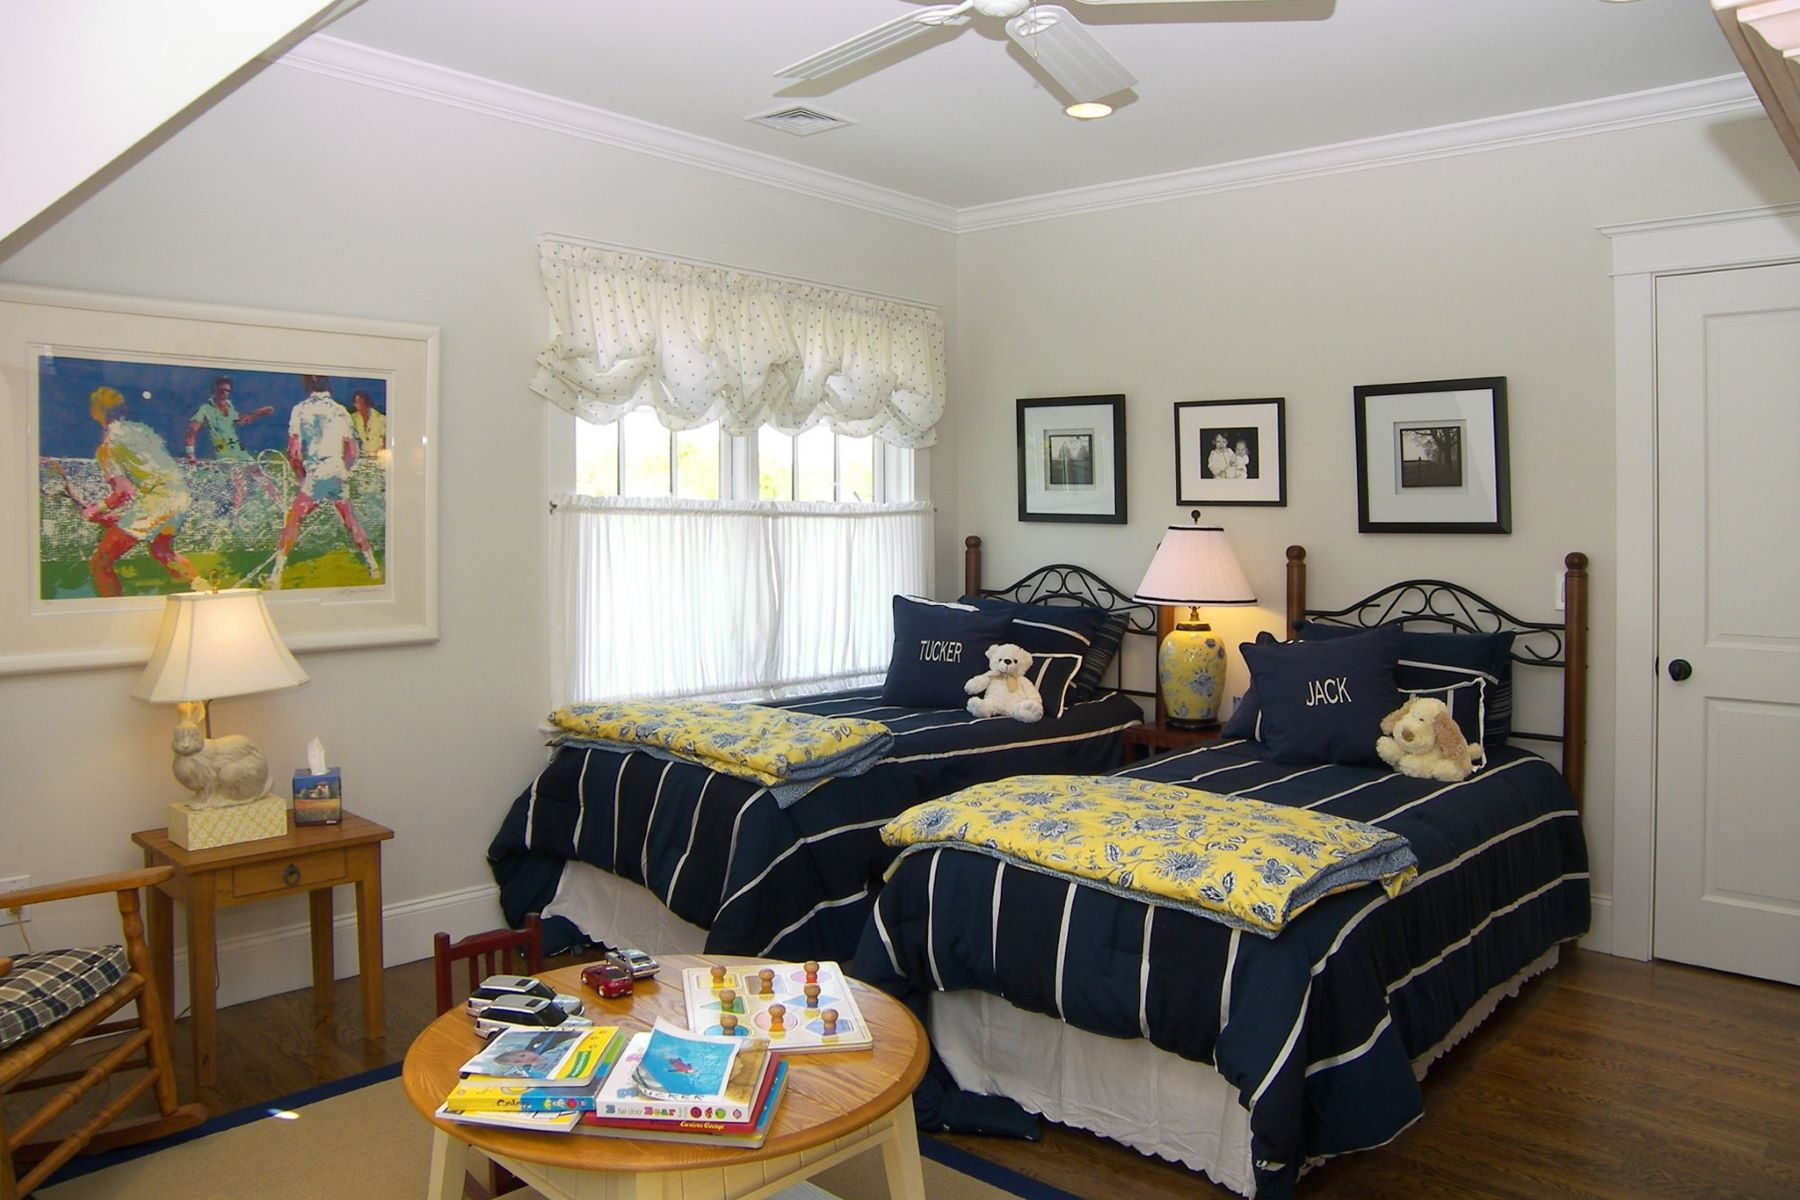 Additional photo for property listing at Ocean Drive Area 17 Beacon Hill Road Newport, Rhode Island 02840 United States